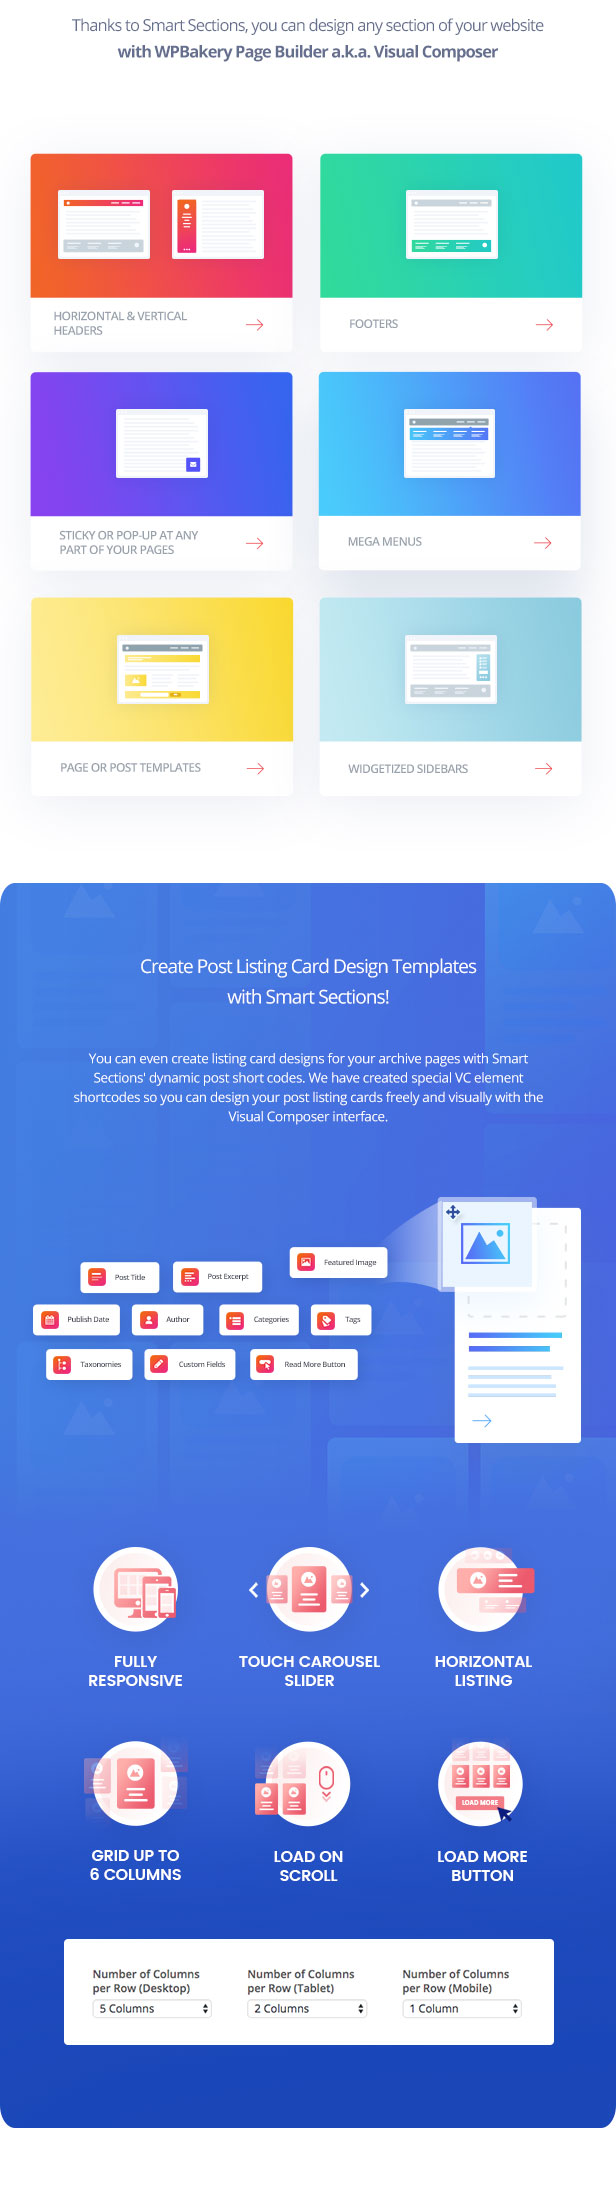 Smart Sections - WPBakery Page Builder (formerly Visual Composer) Addon